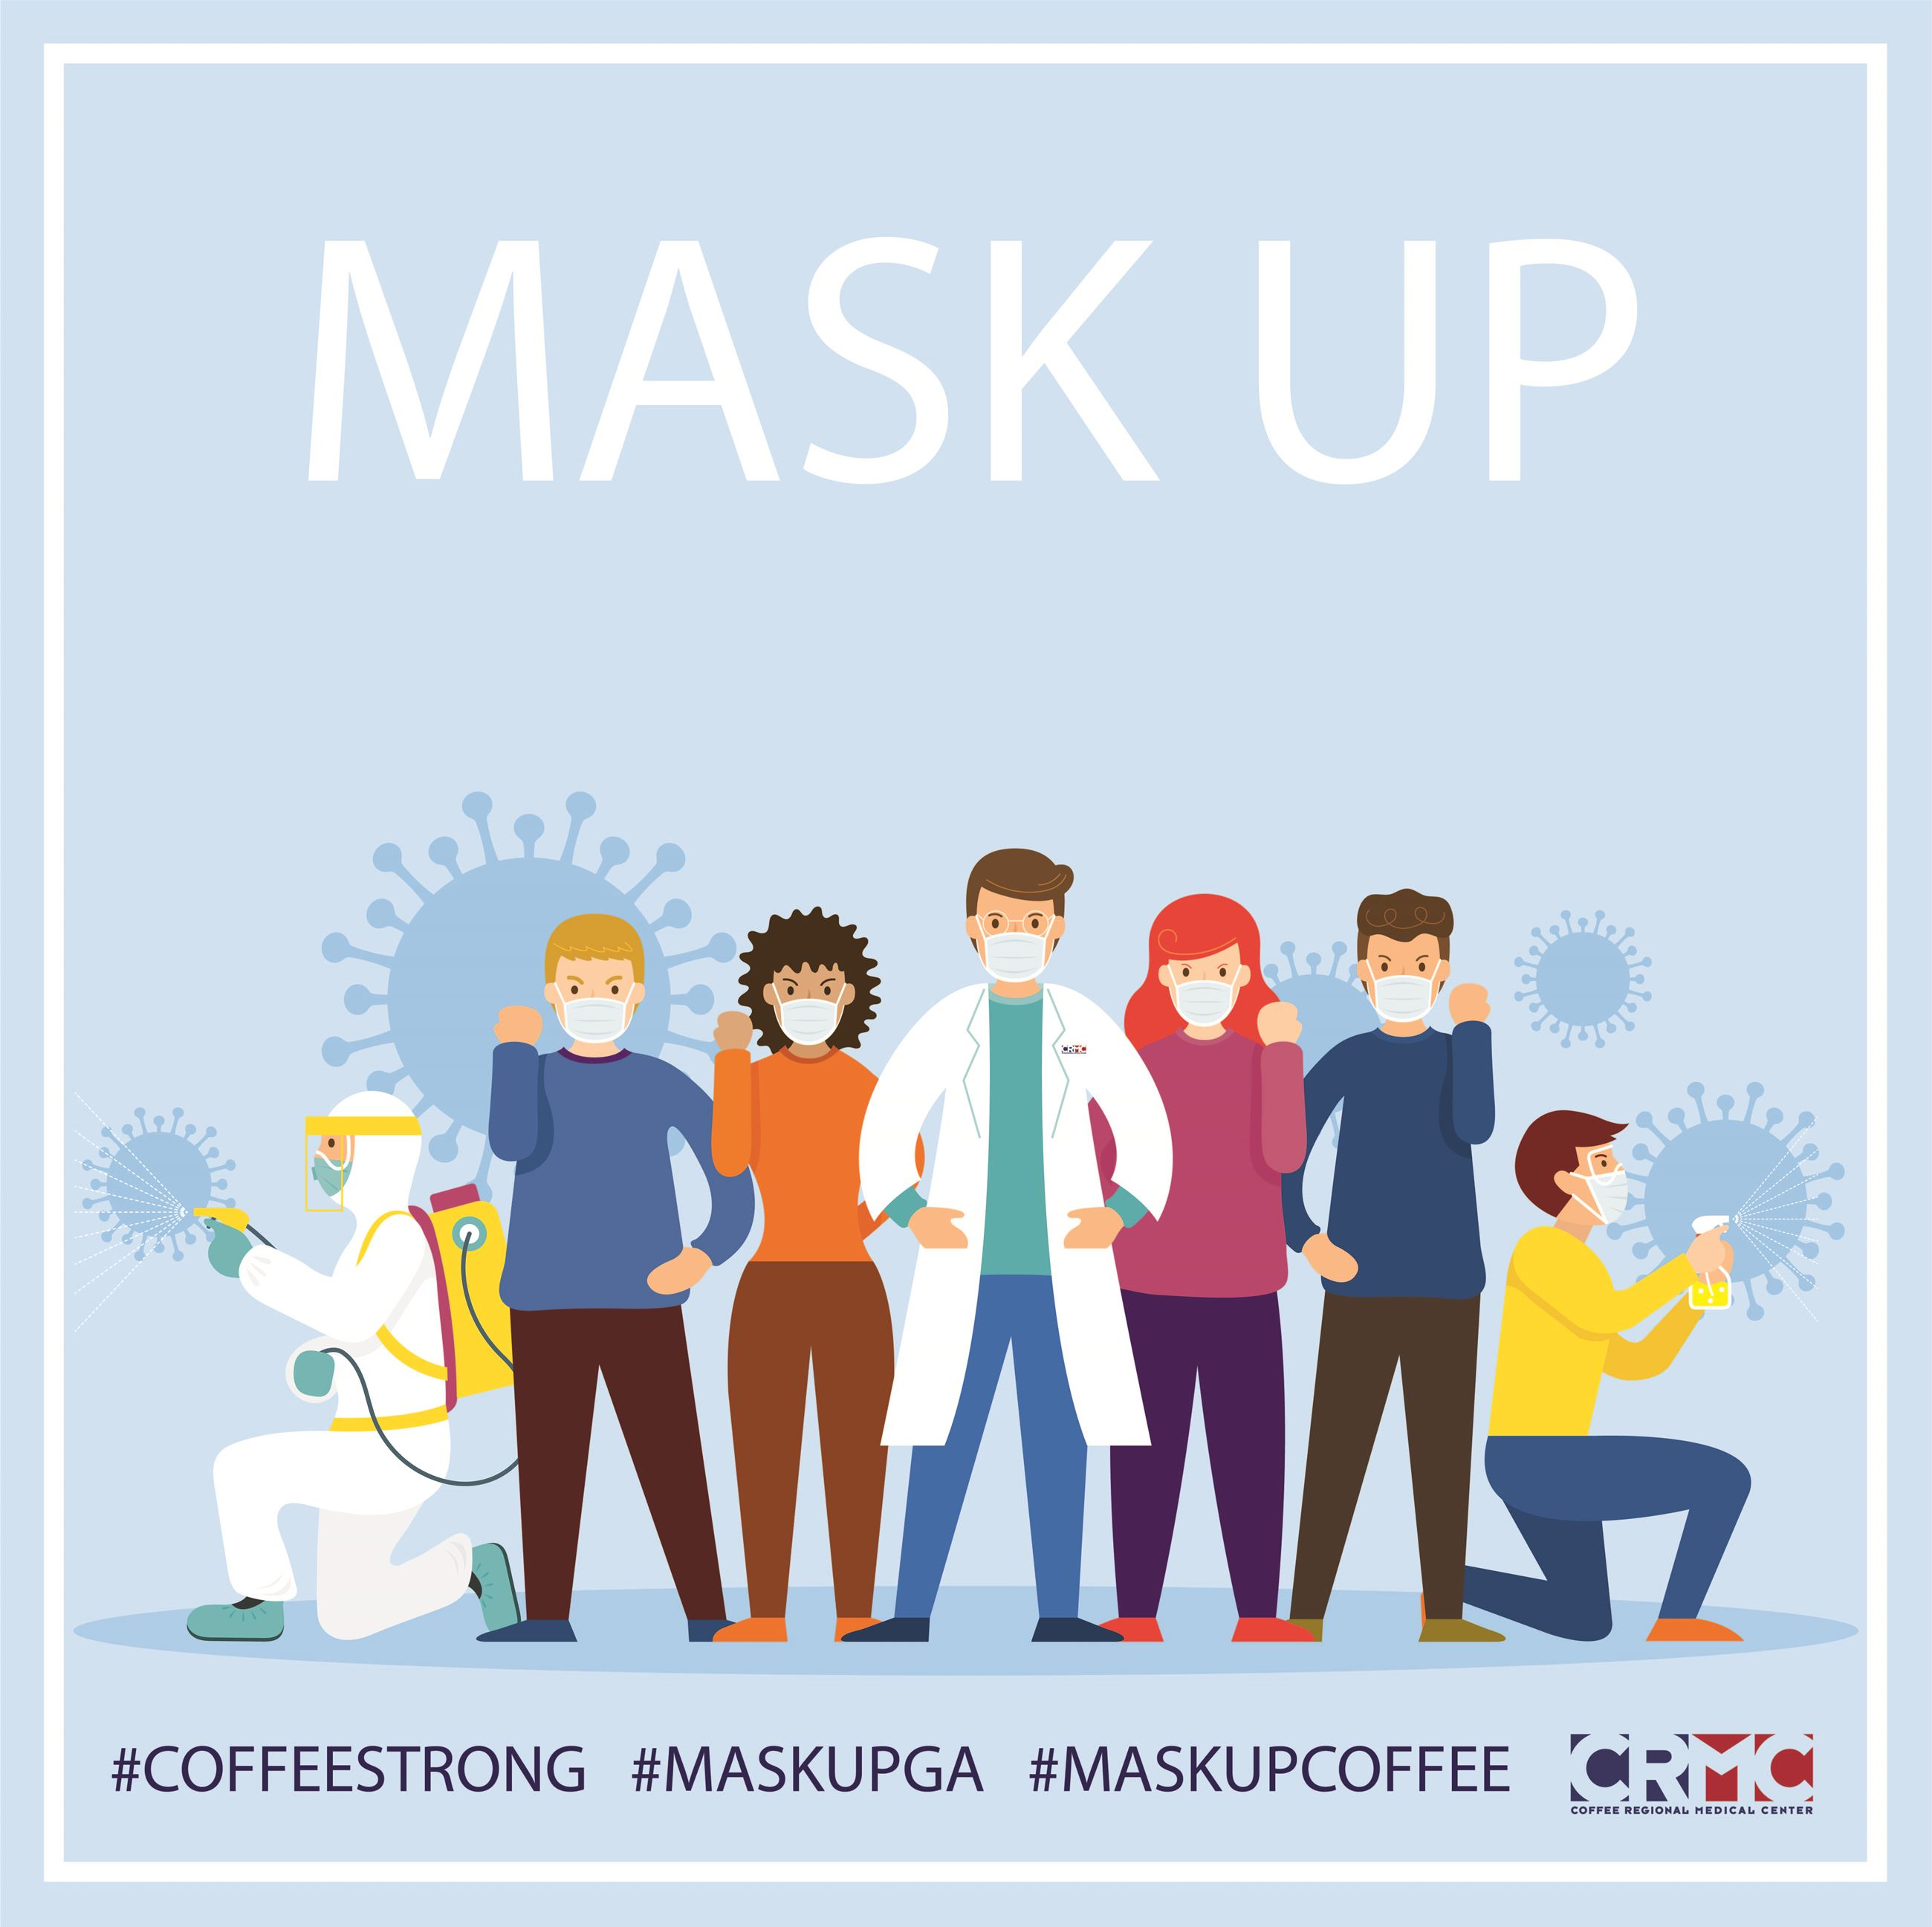 mask up image